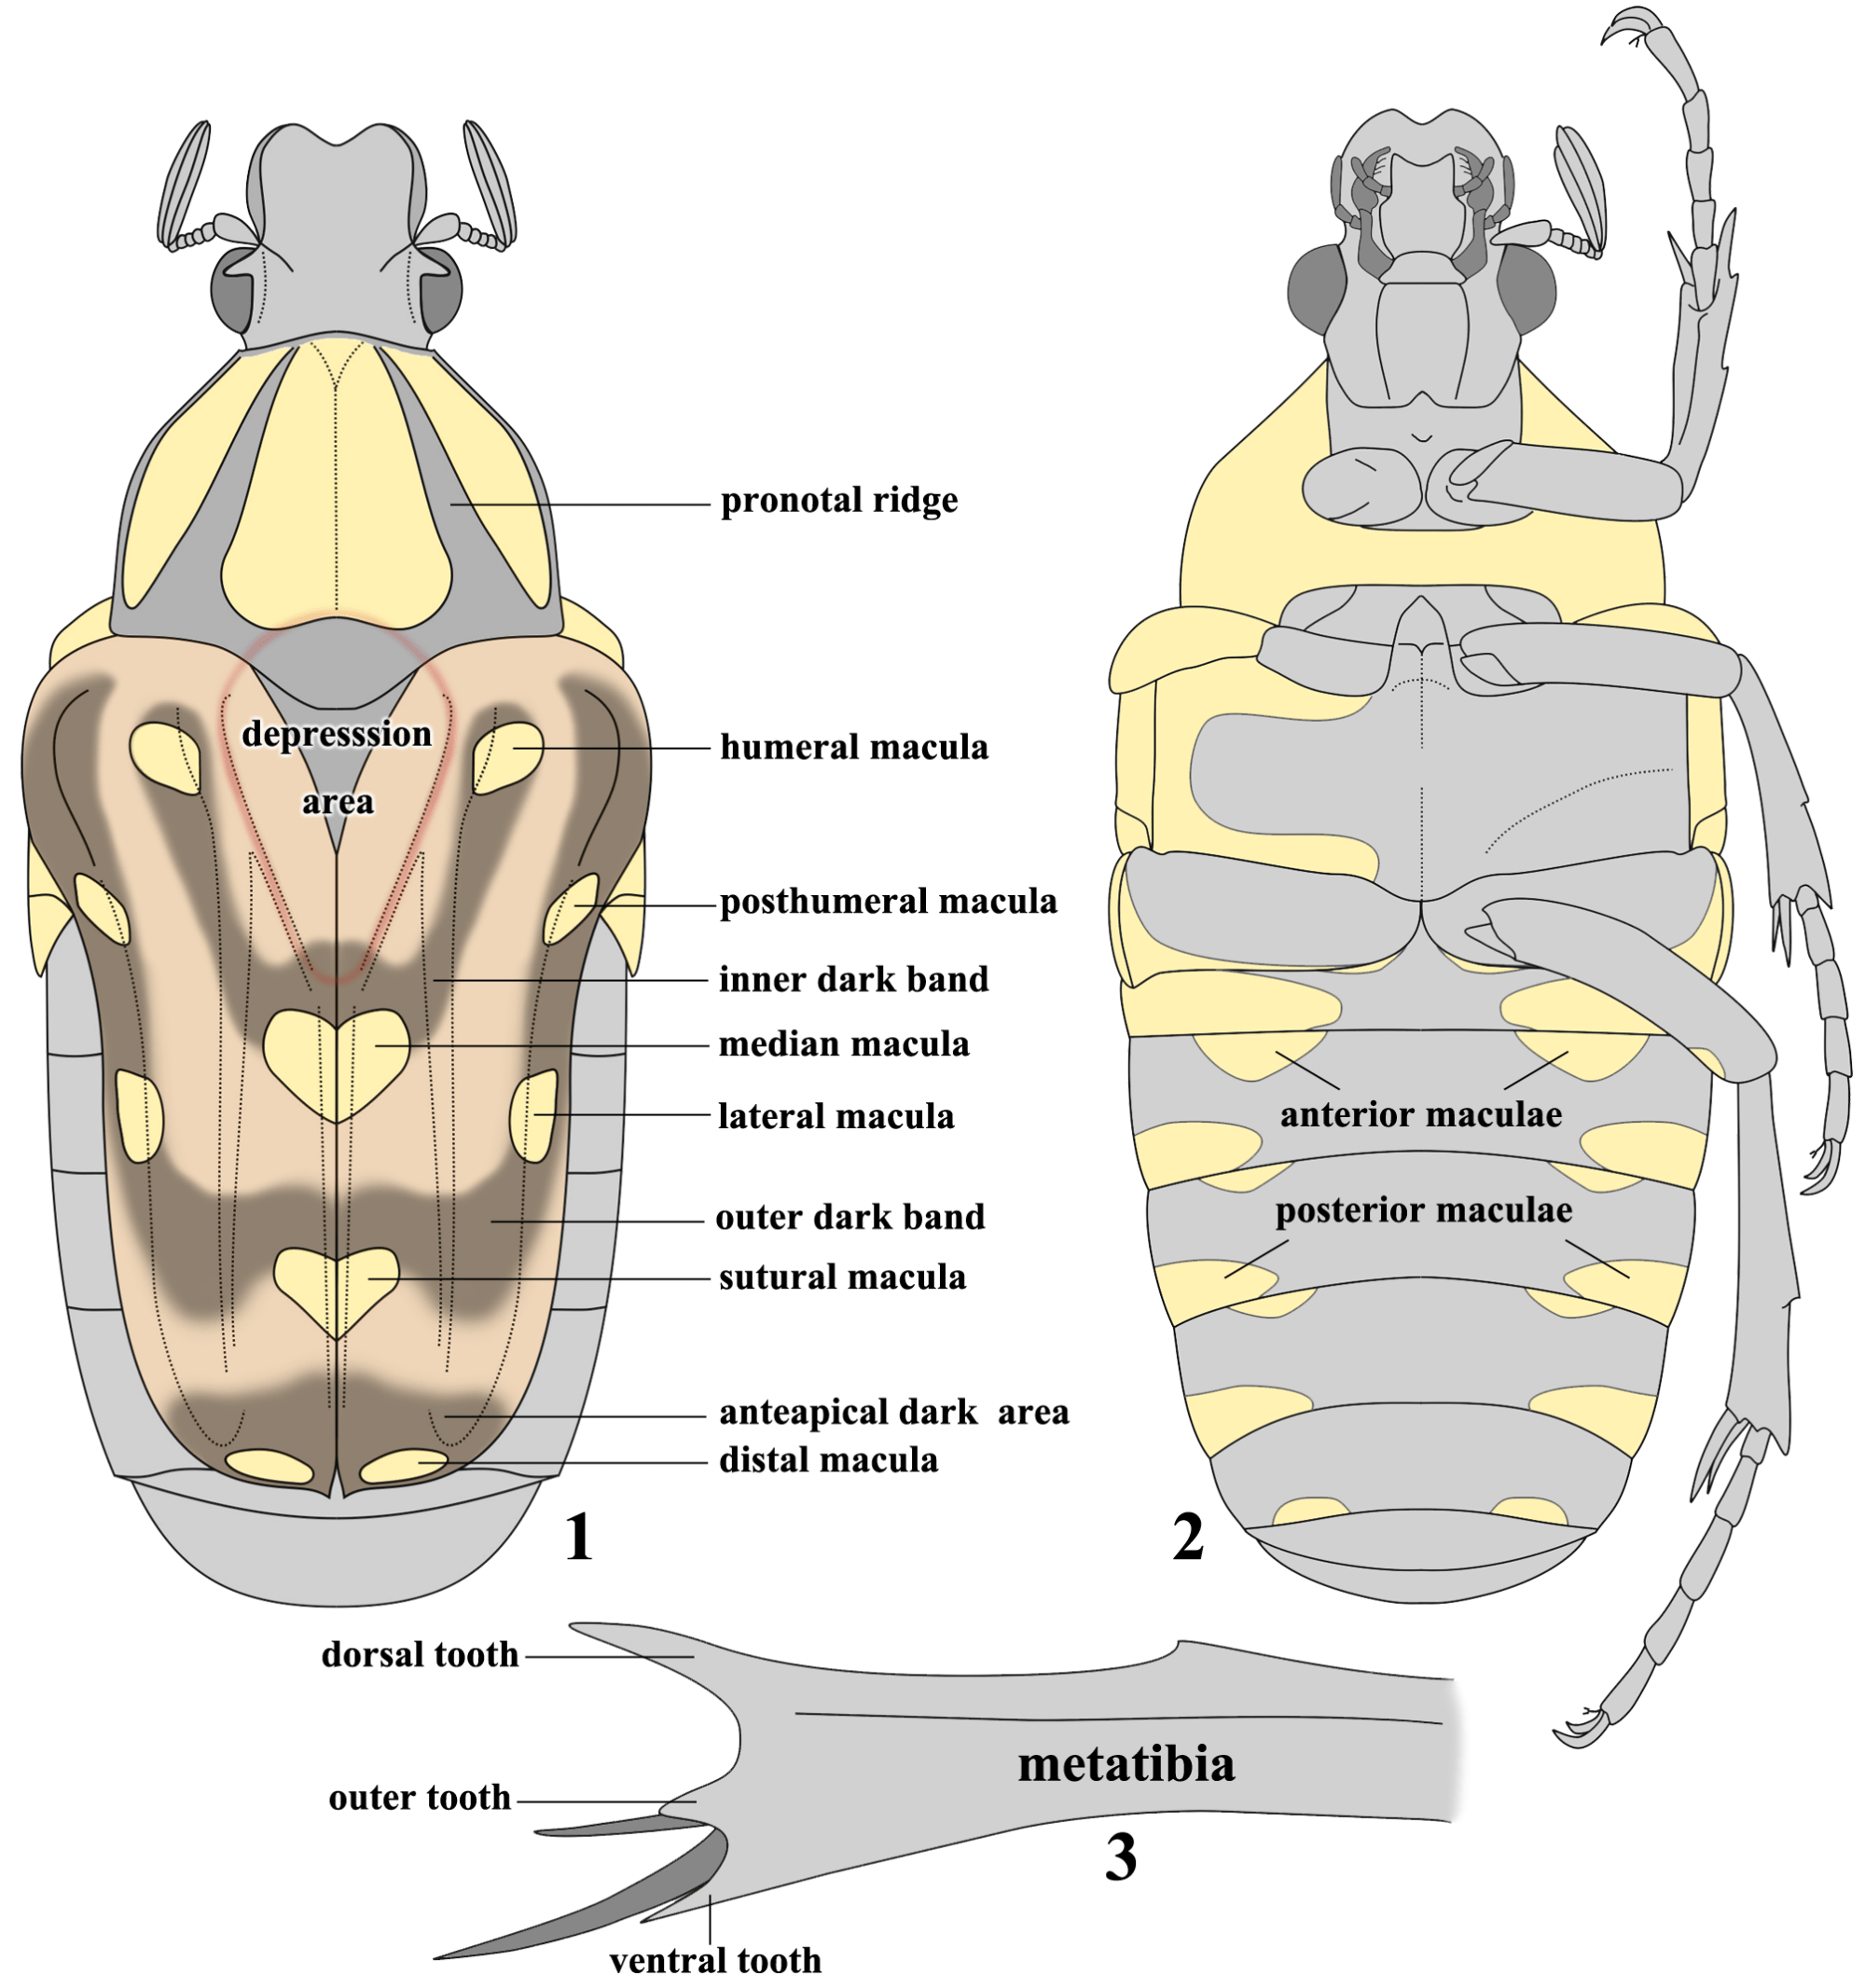 hight resolution of 1 dorsal view 2 ventral view 3 in taxonomic review of the oriental flower beetle coilodera penicillata species complex coleoptera scarabaeidae